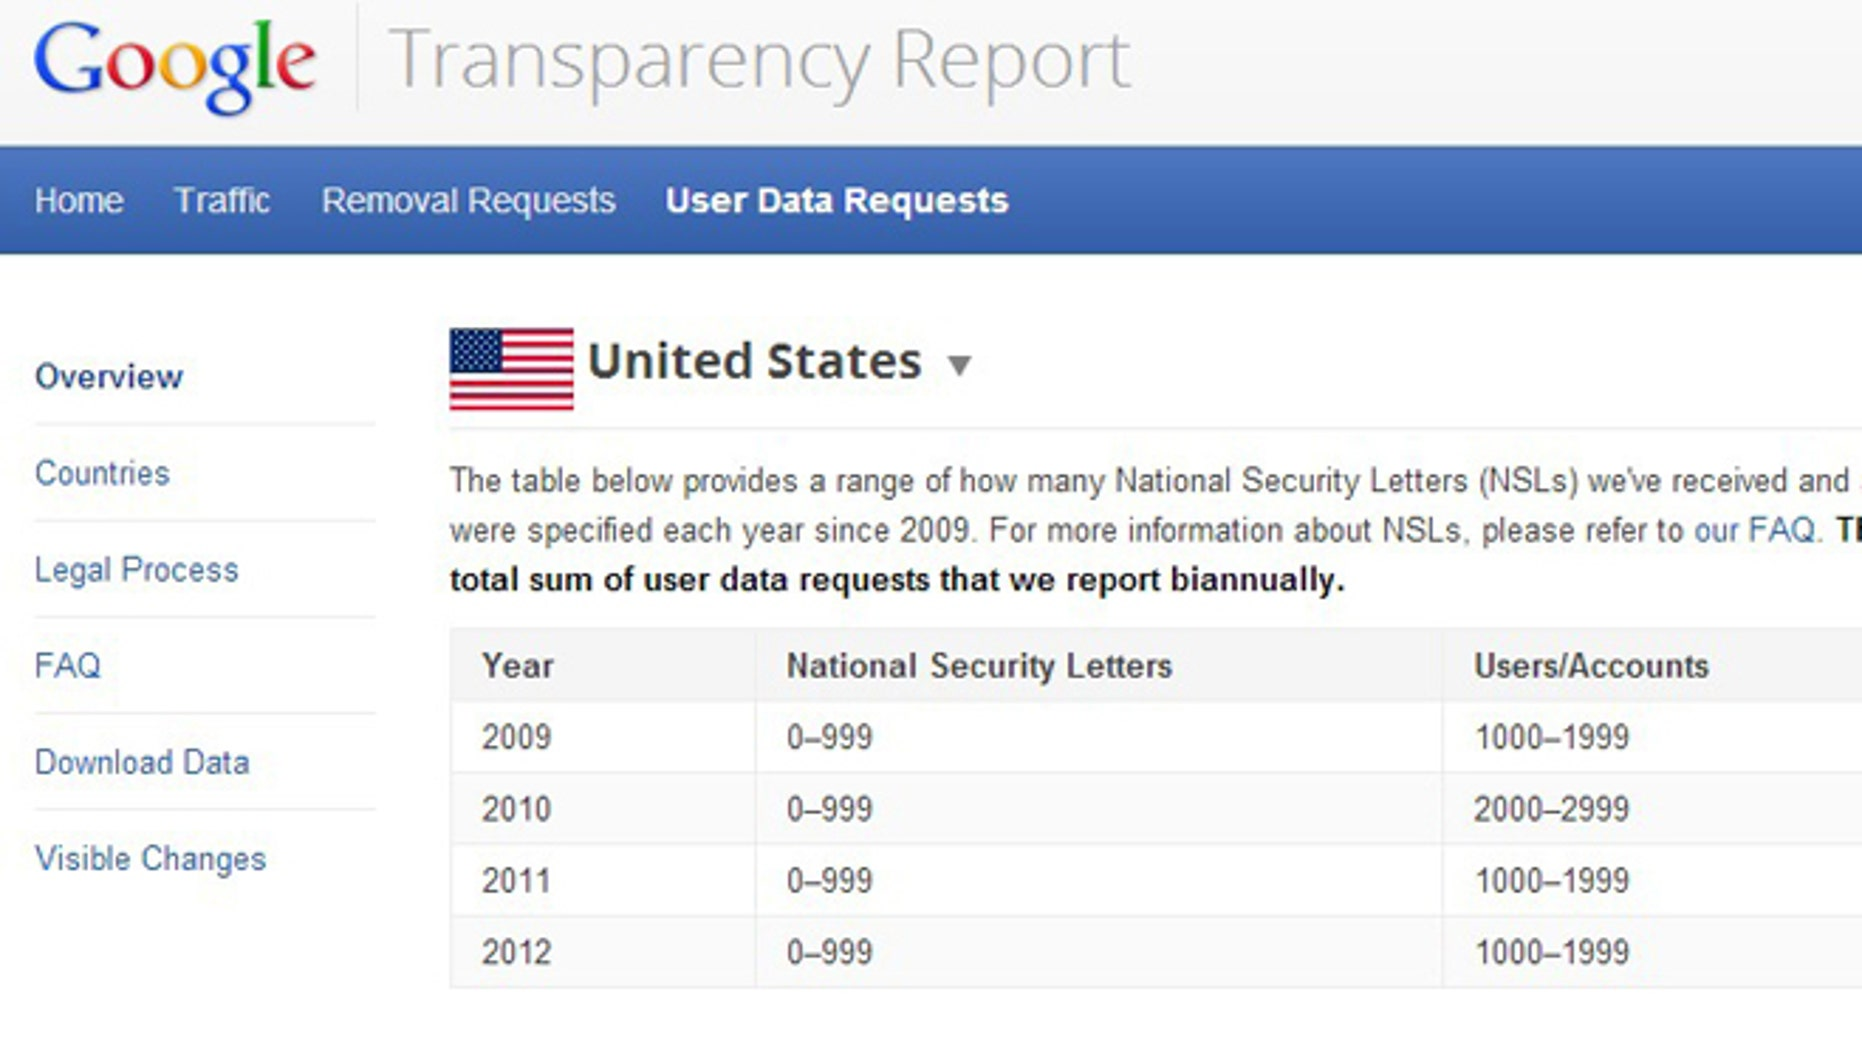 Mar. 5, 2013: Google has revealed some information about the FBI's use of National Security Letters to seek information -- an unprecedented win for privacy, experts said.